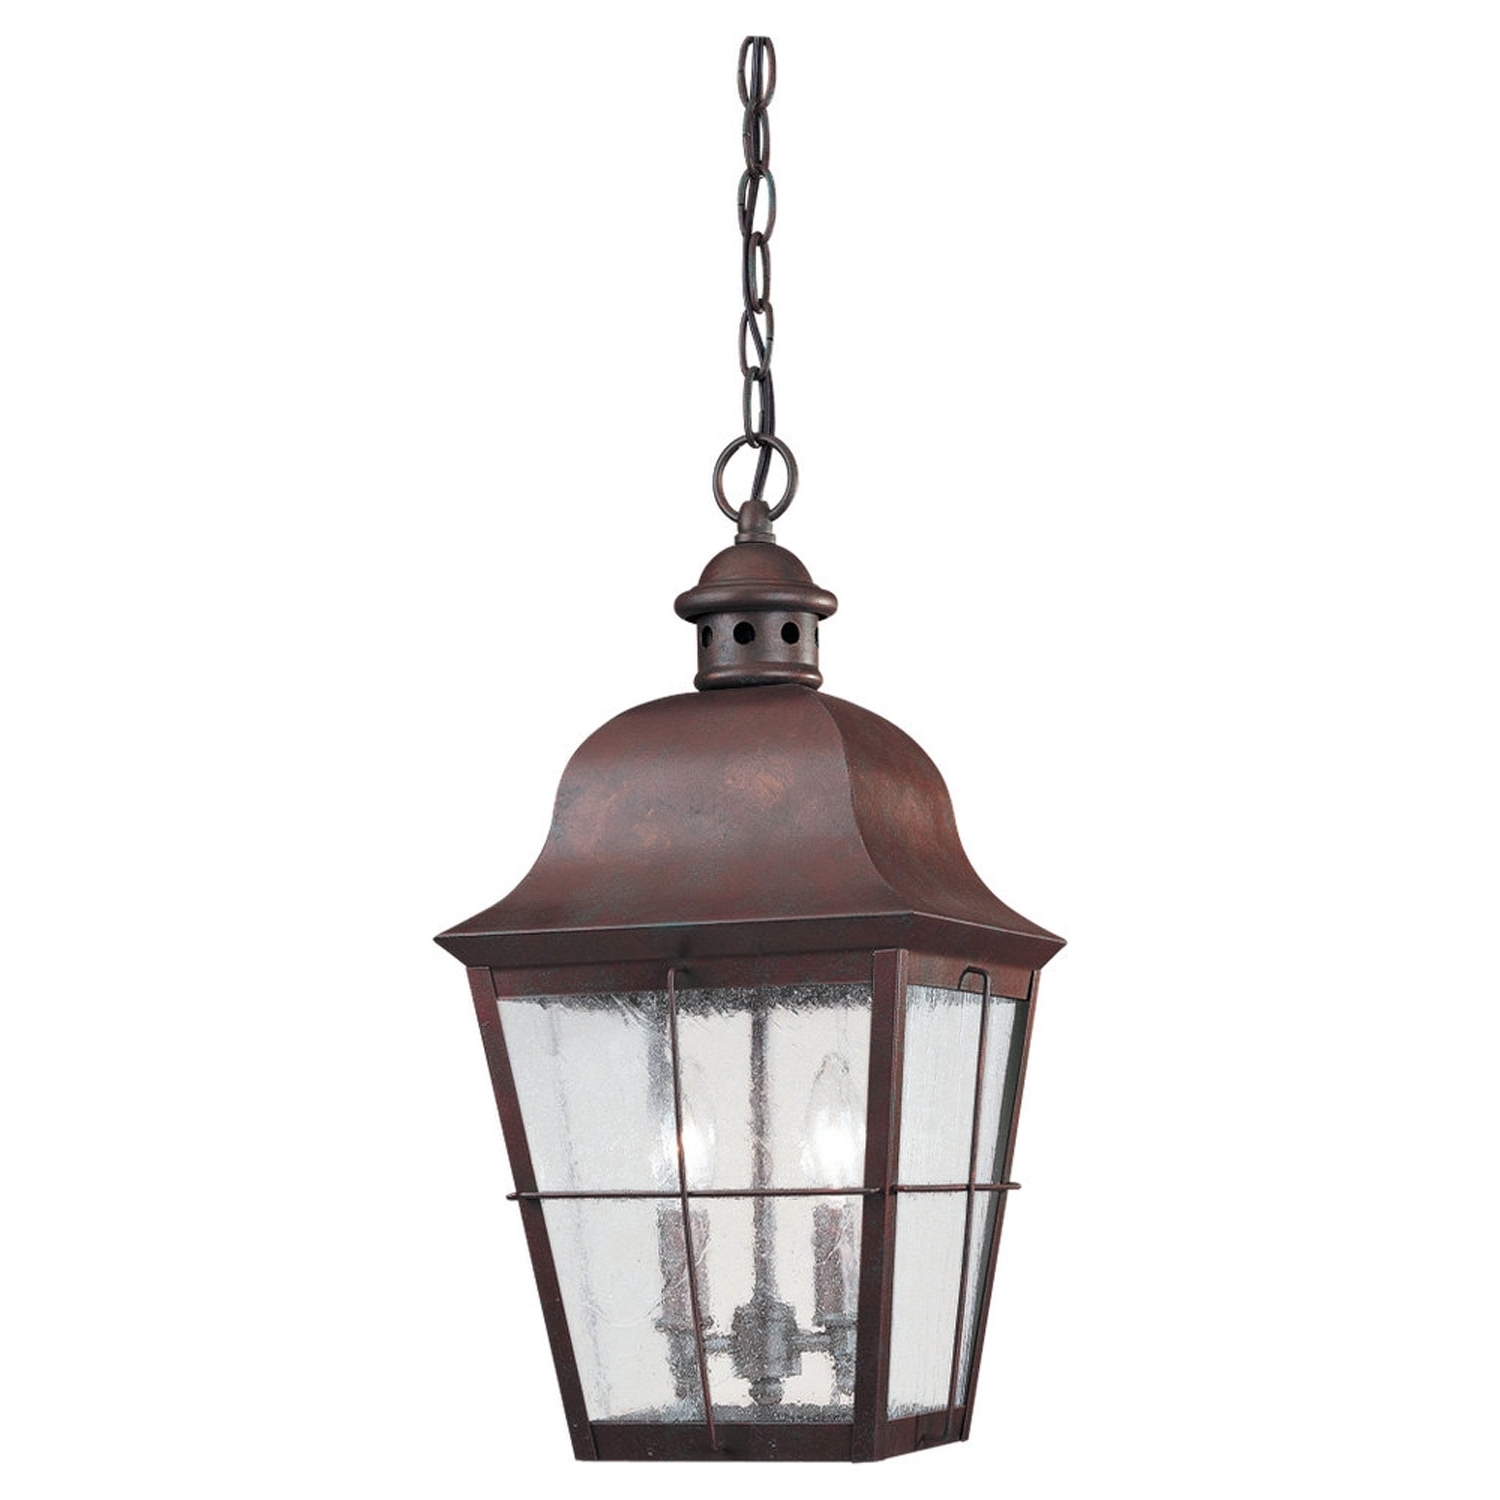 Famous Sea Gull Lighting Colonial Copper Outdoor Hanging Lantern 6062 44 Regarding Led Outdoor Hanging Lanterns (View 4 of 20)